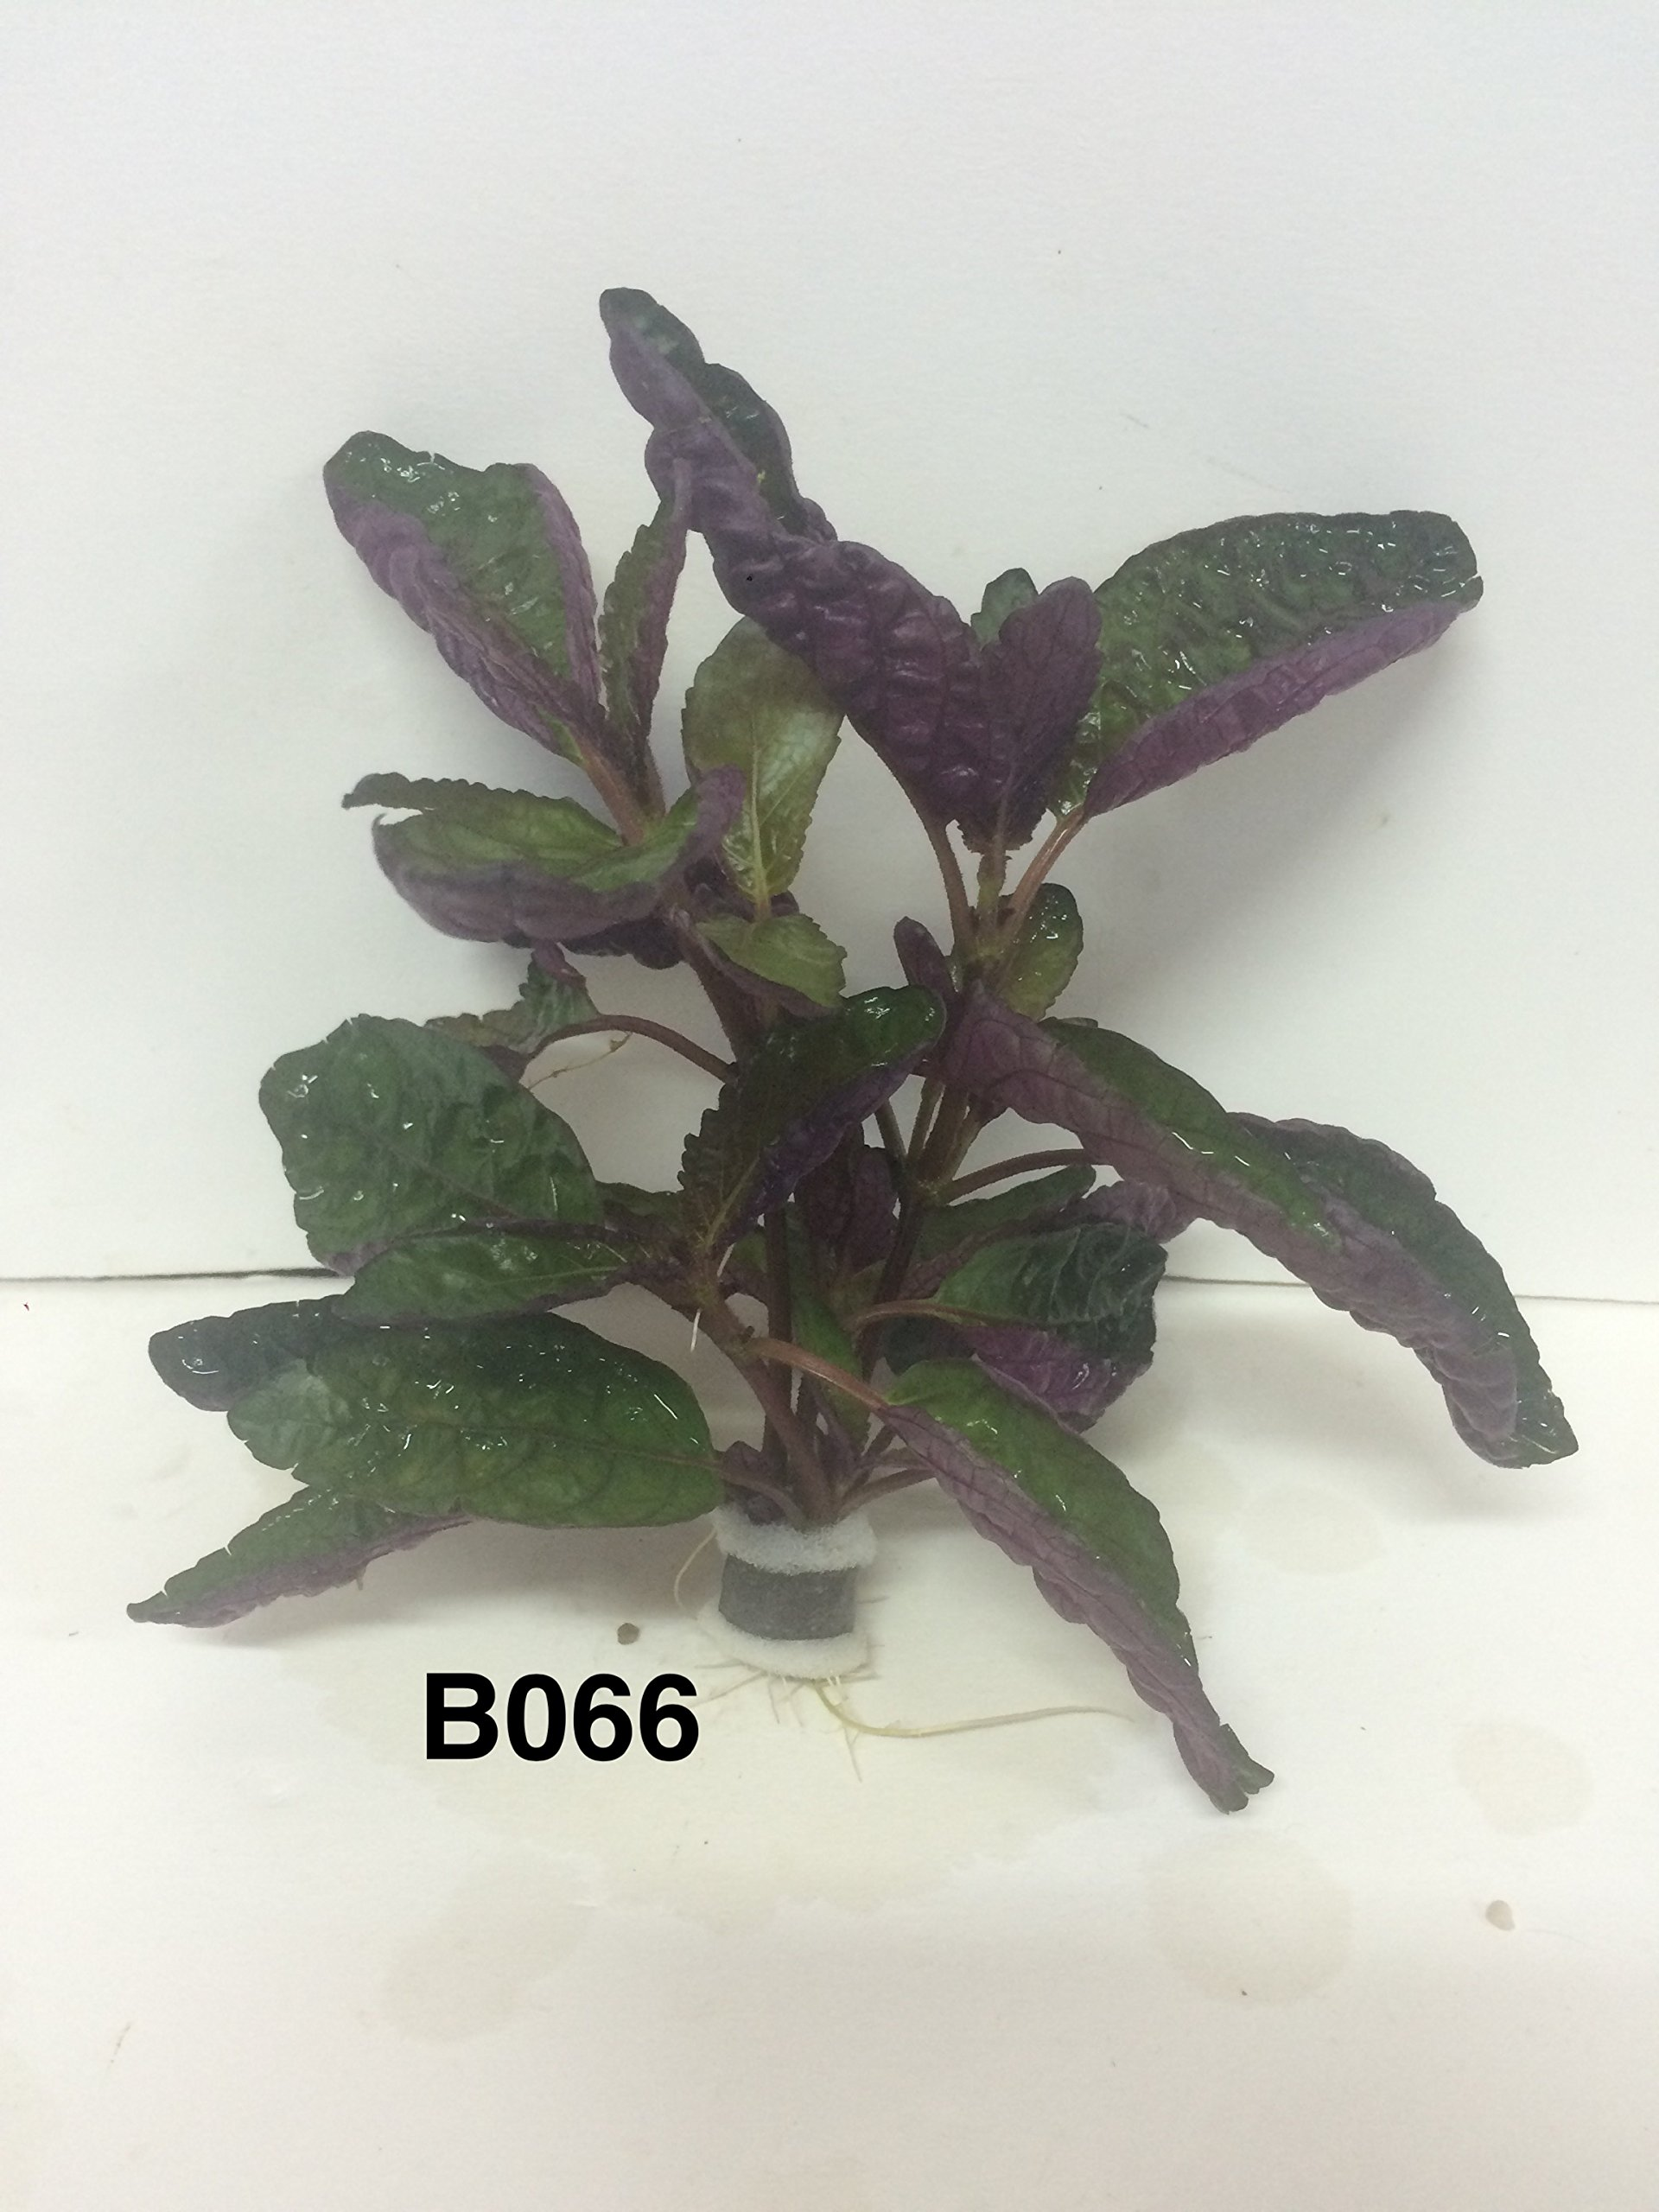 Exotic Live Aquatic Plant for Fresh Water Hemigraphis colorata Bundle B066 By Jyco **Buy 2 GET 1 Free by Jayco (Image #5)